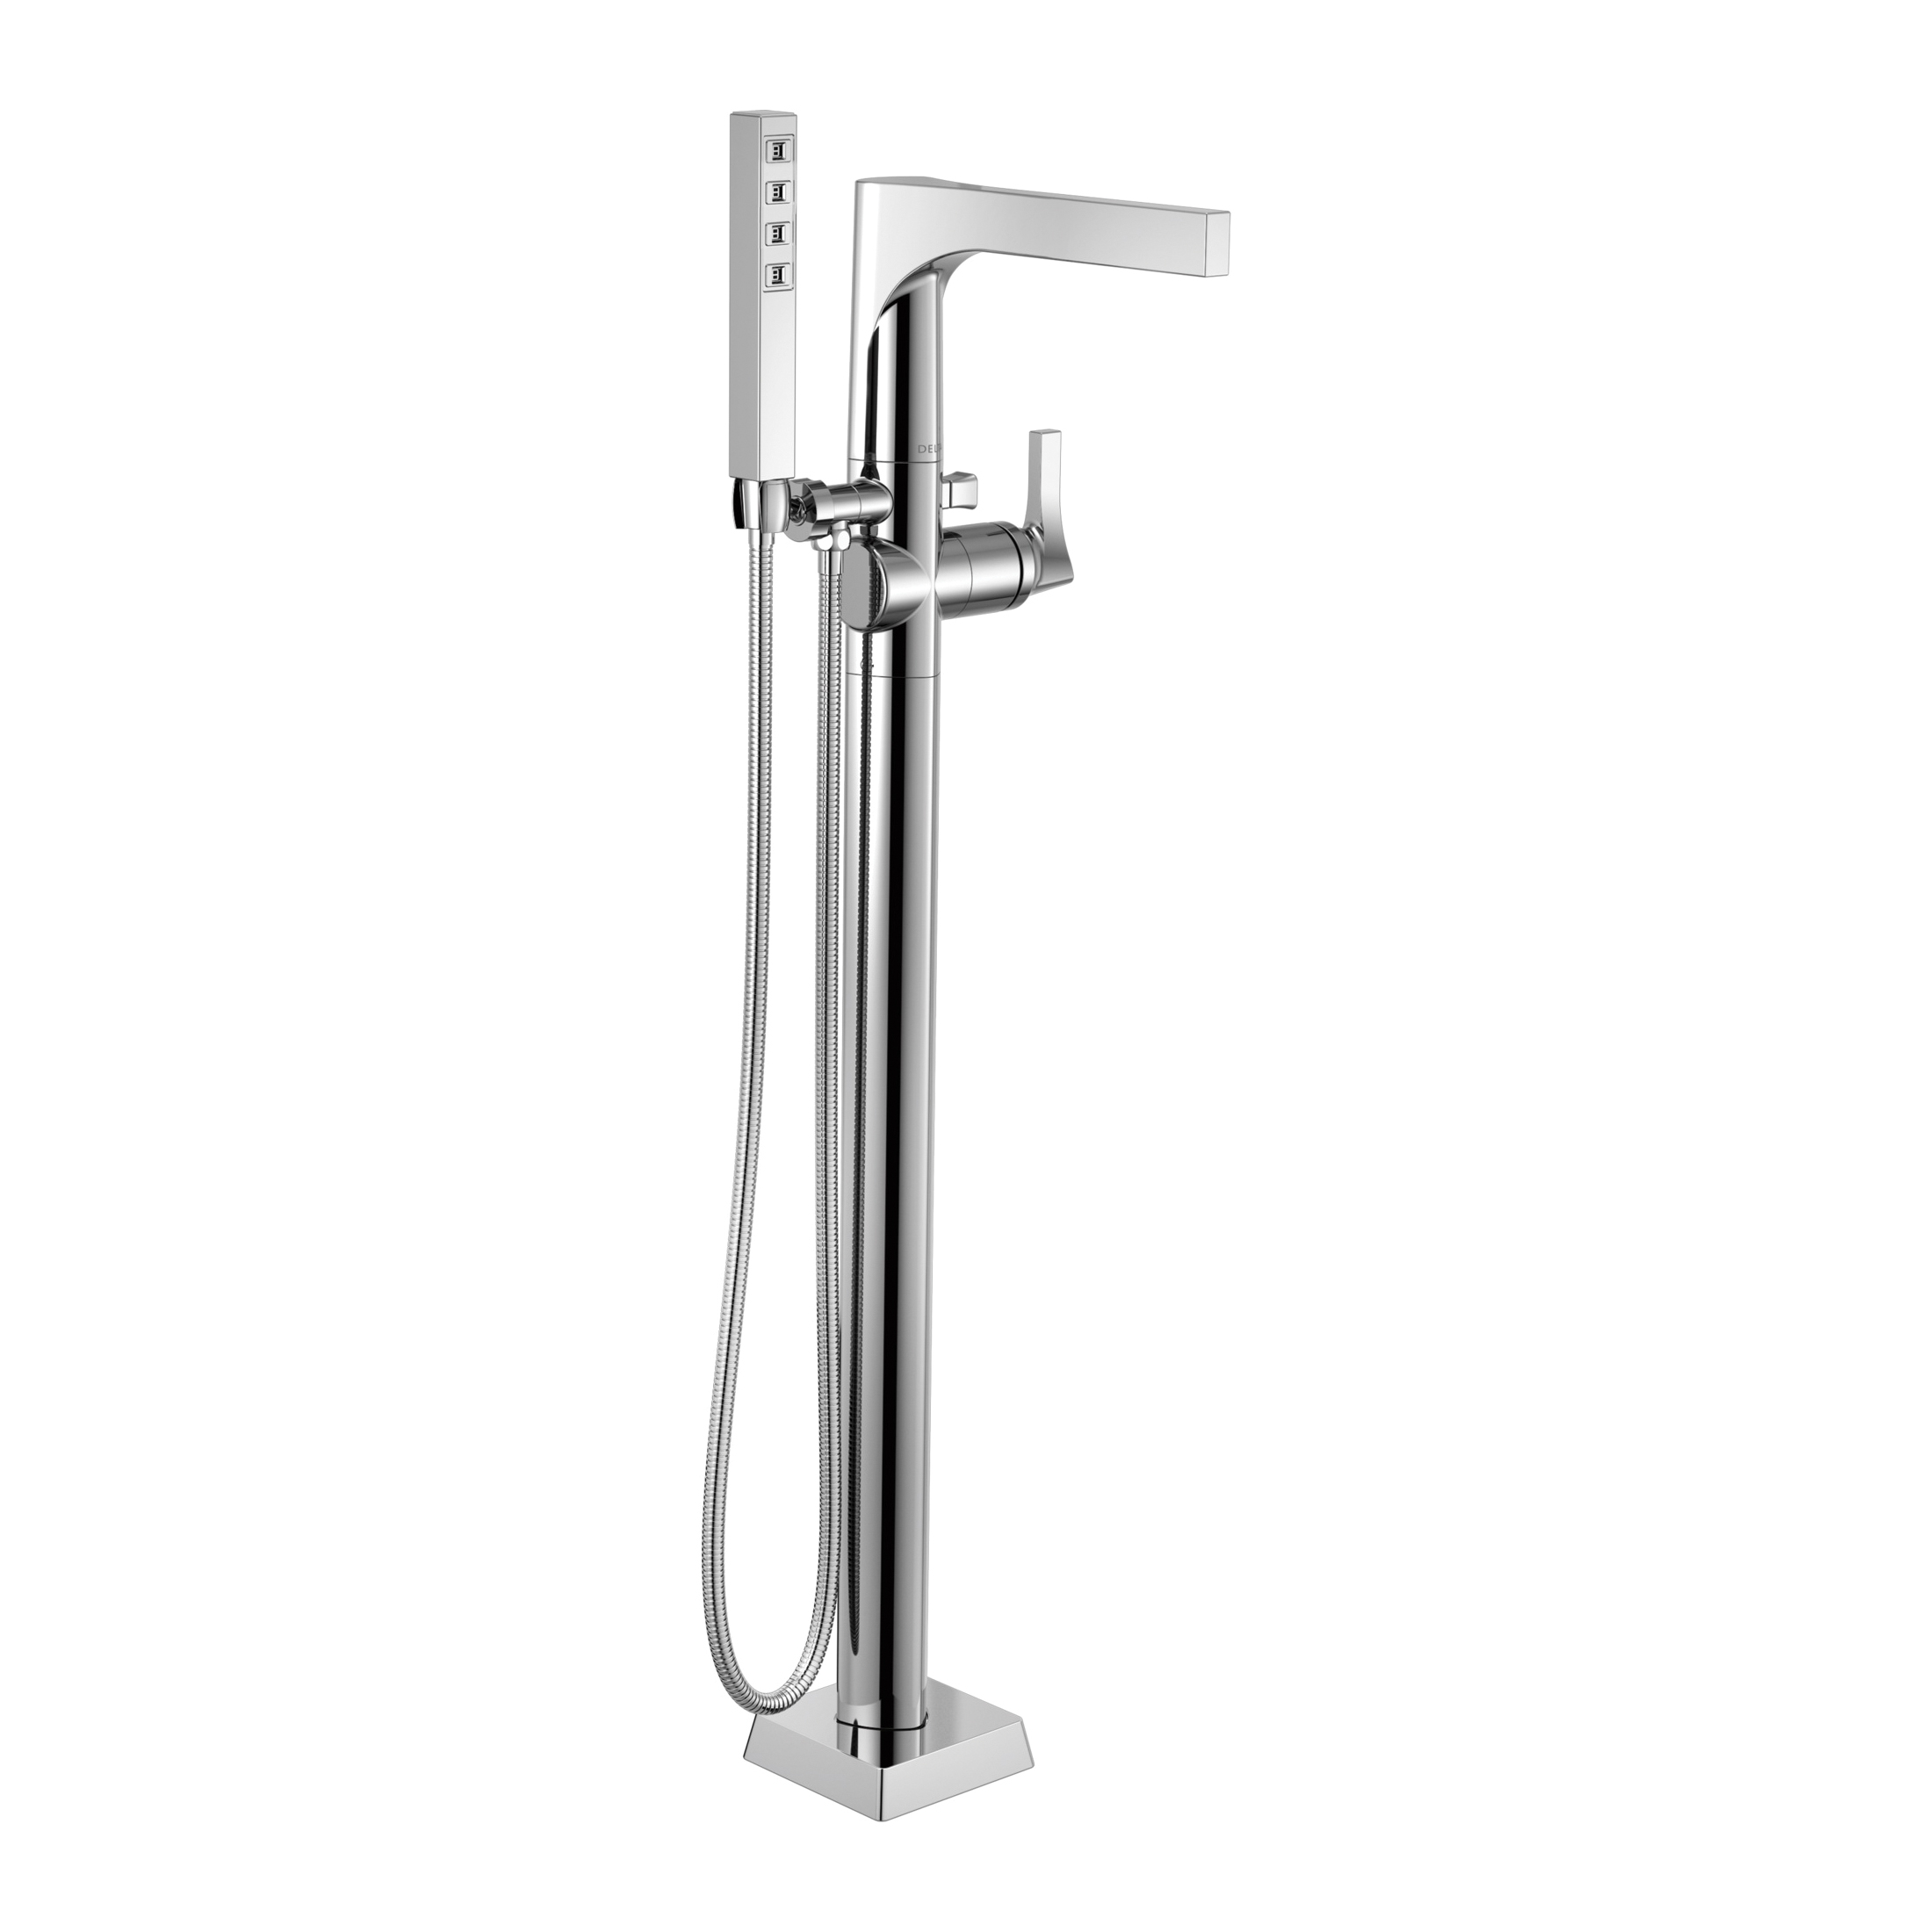 DELTA® T4774-FL Zura™ Tub Filler, 2 gpm, Chrome Plated, 1 Handles, Hand Shower Yes/No: Yes, Domestic, Commercial